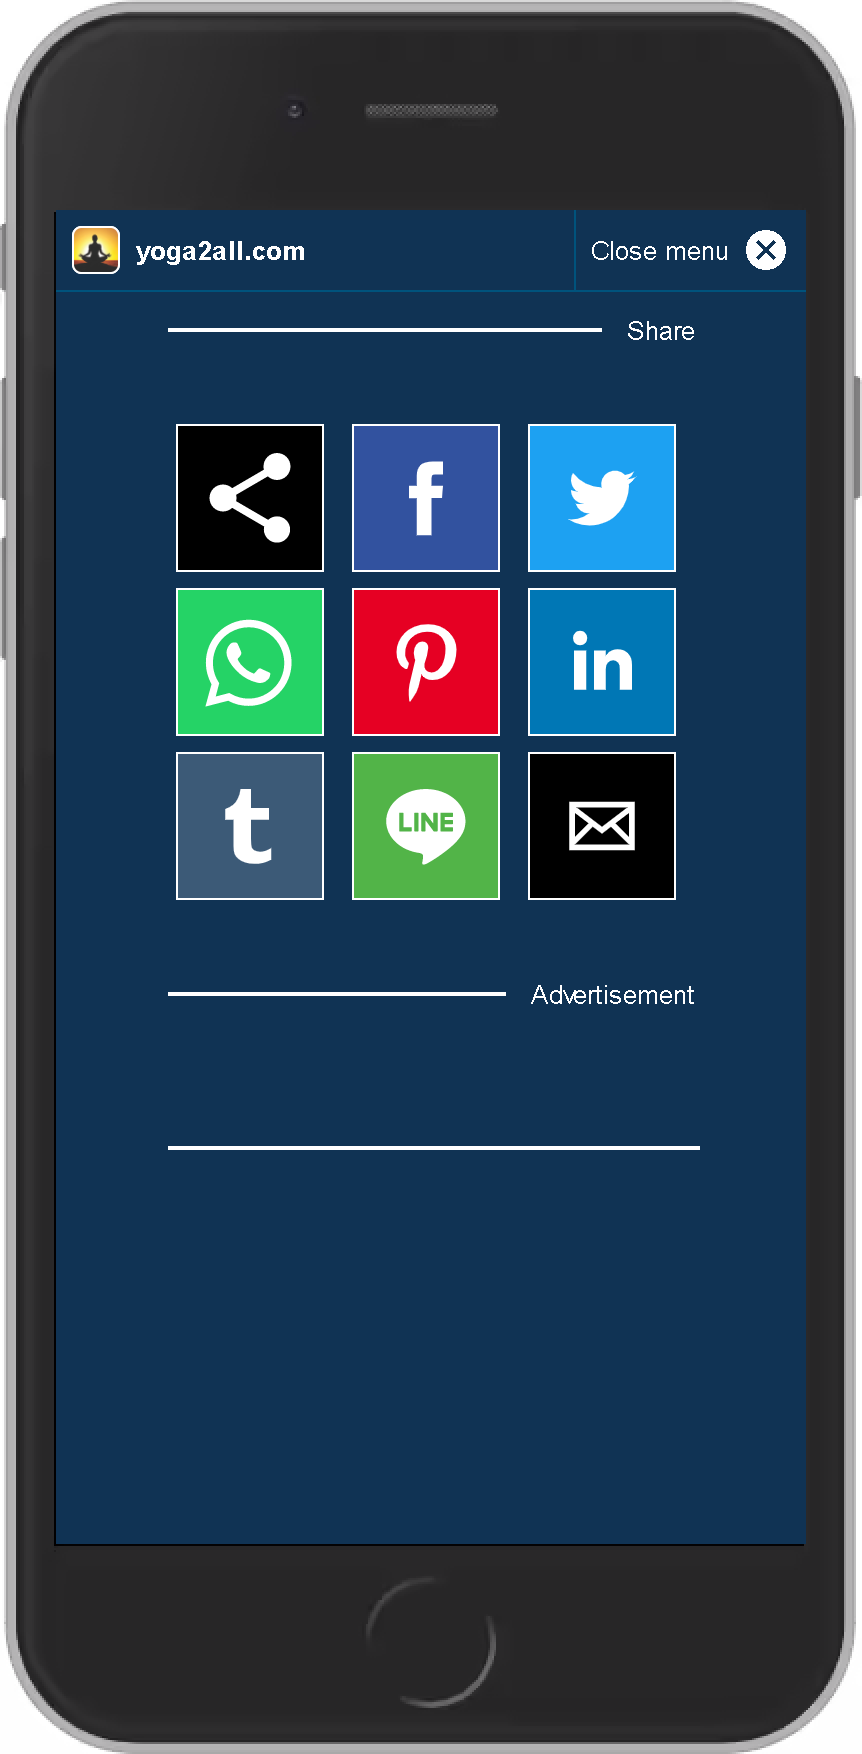 AMP Example for share-function/share-menu